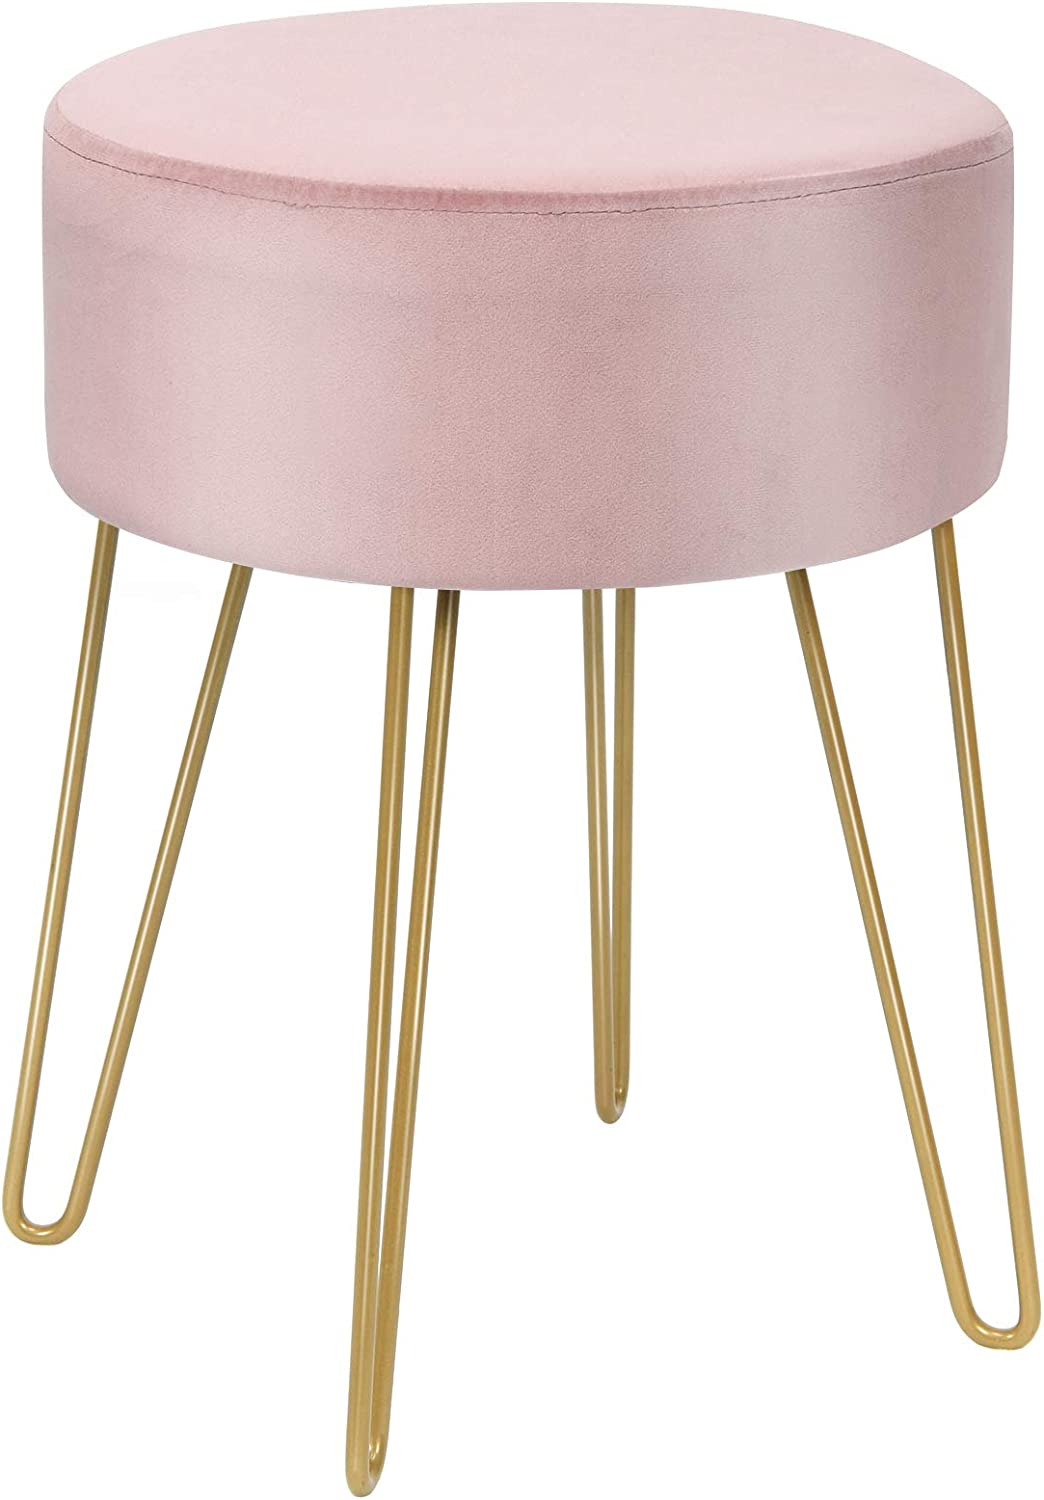 Giantex Velvet Footrest Stool Round Reservation Sturdy New arrival Meta Gold Modern with